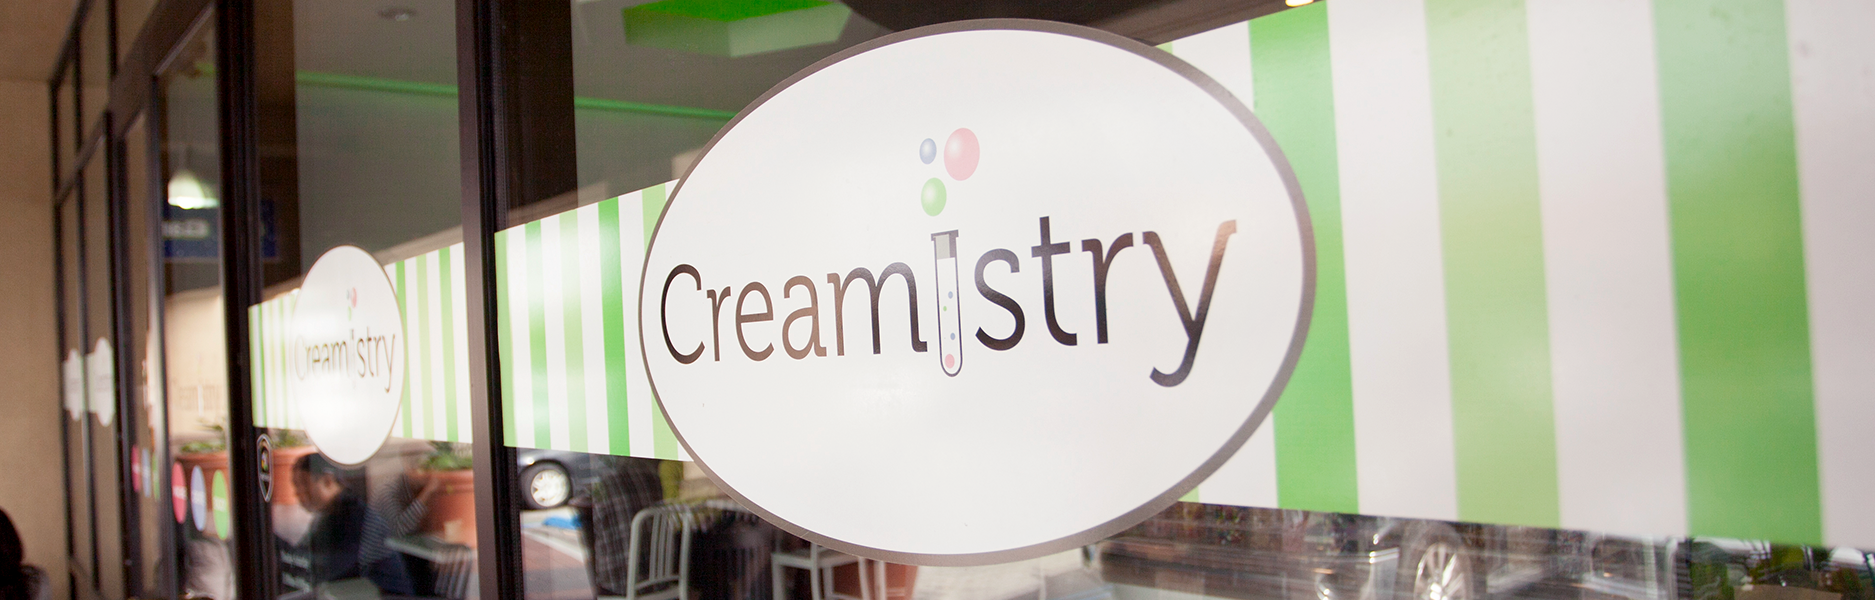 Creamistry Promotional Banners